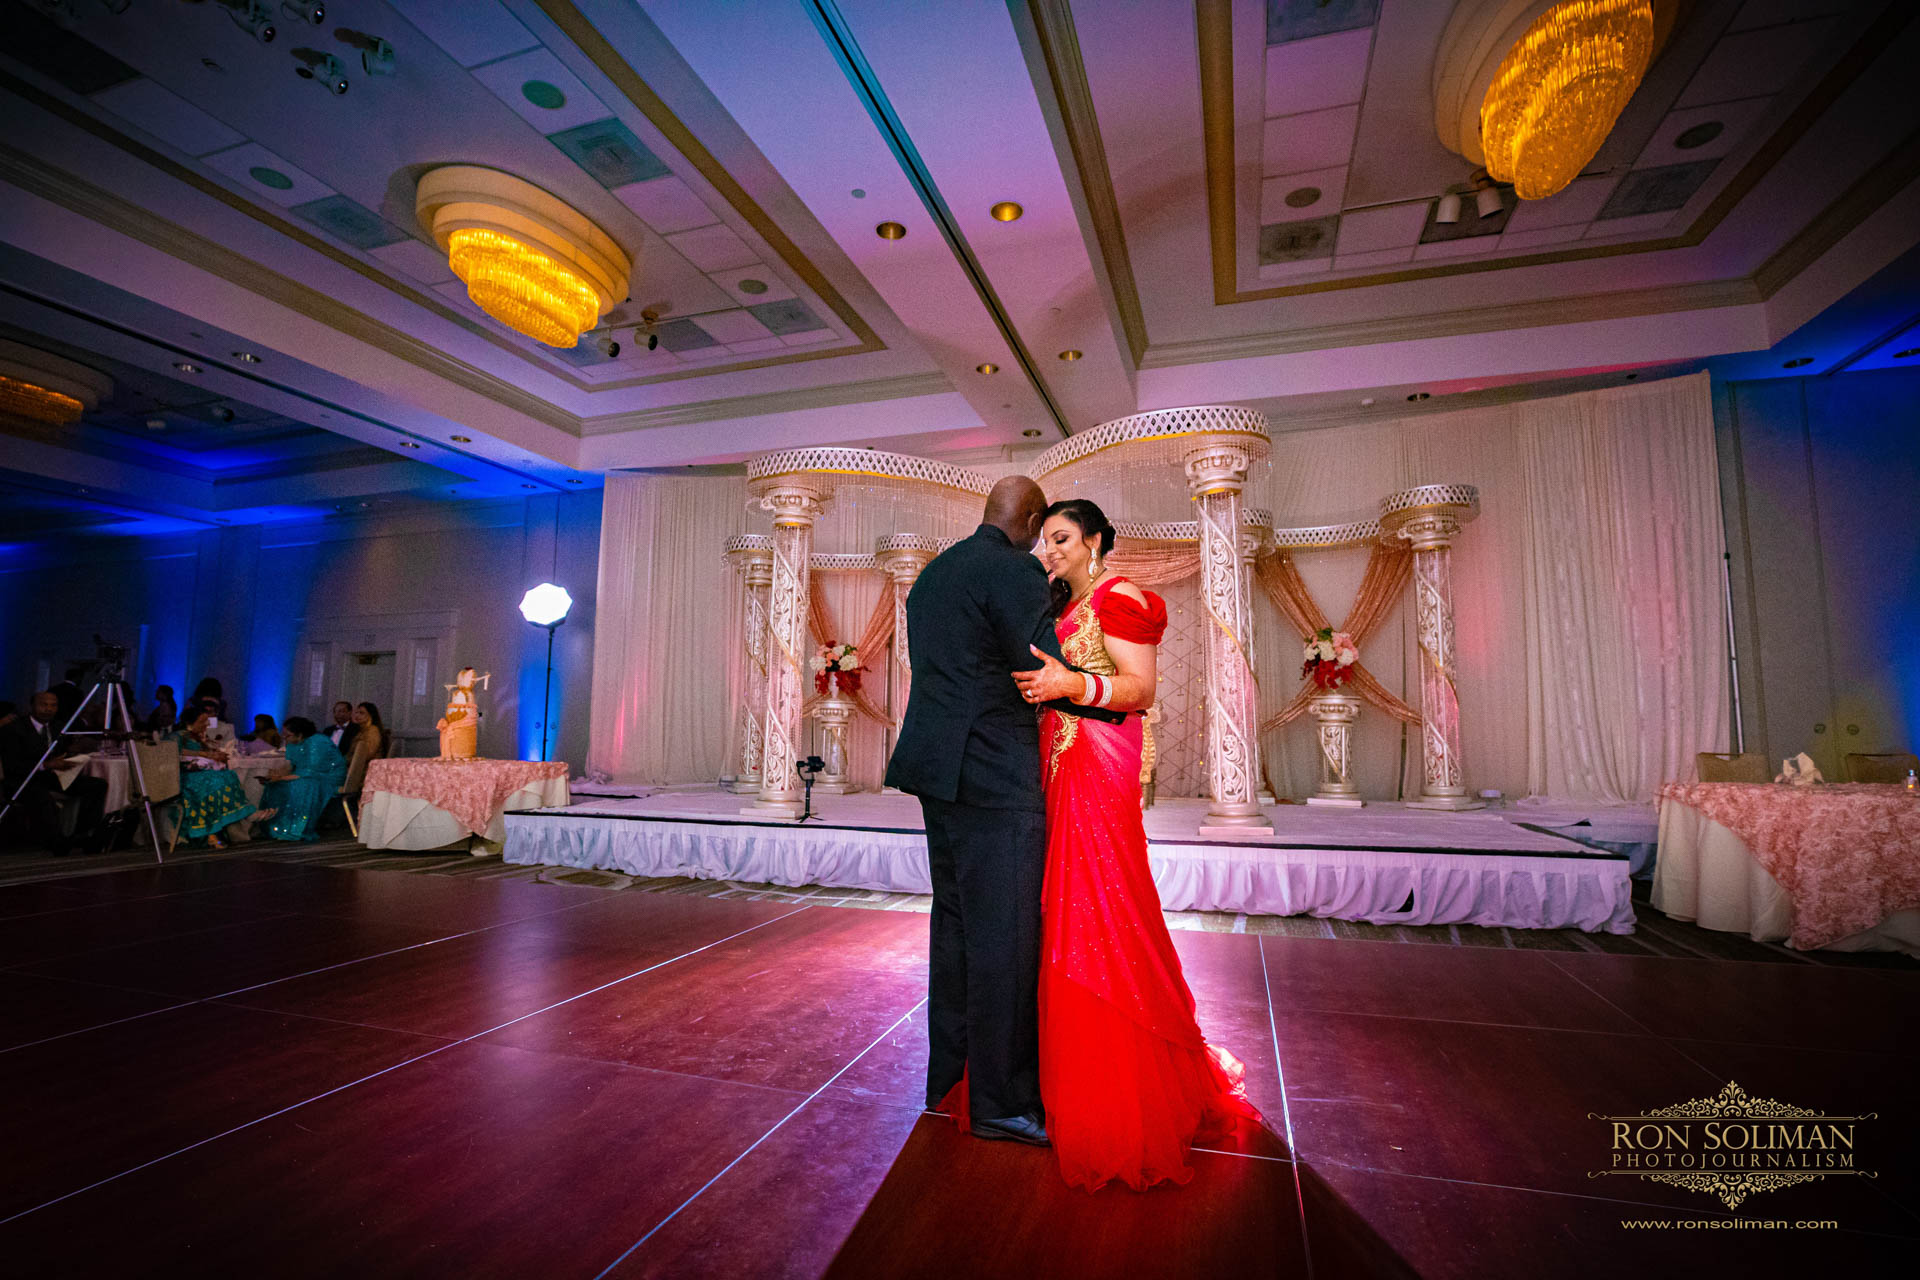 Gaithersburg Marriott - Washingtonian Center Wedding 21